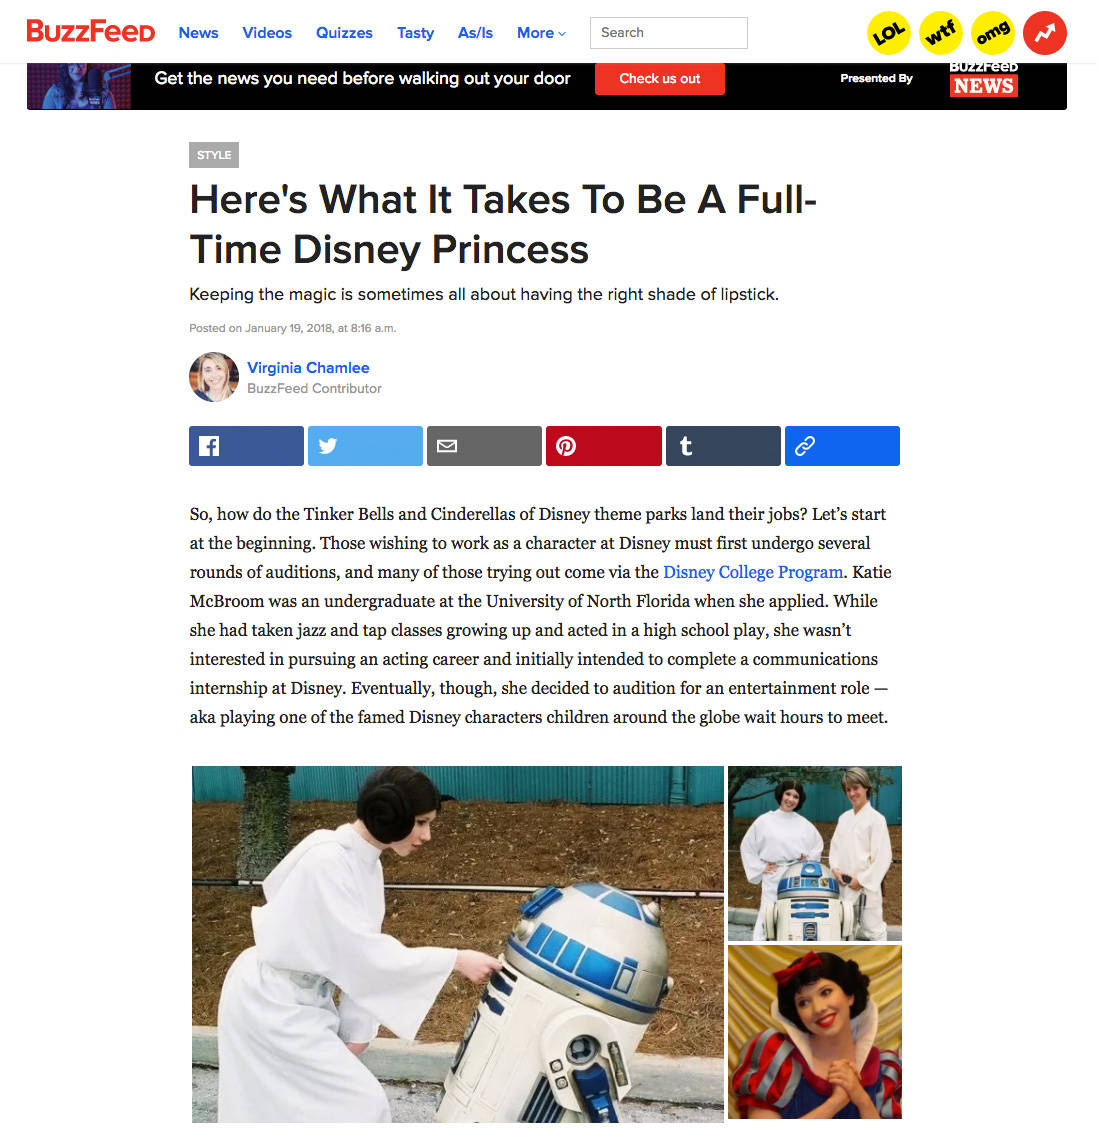 buzzfeed-disney-princess